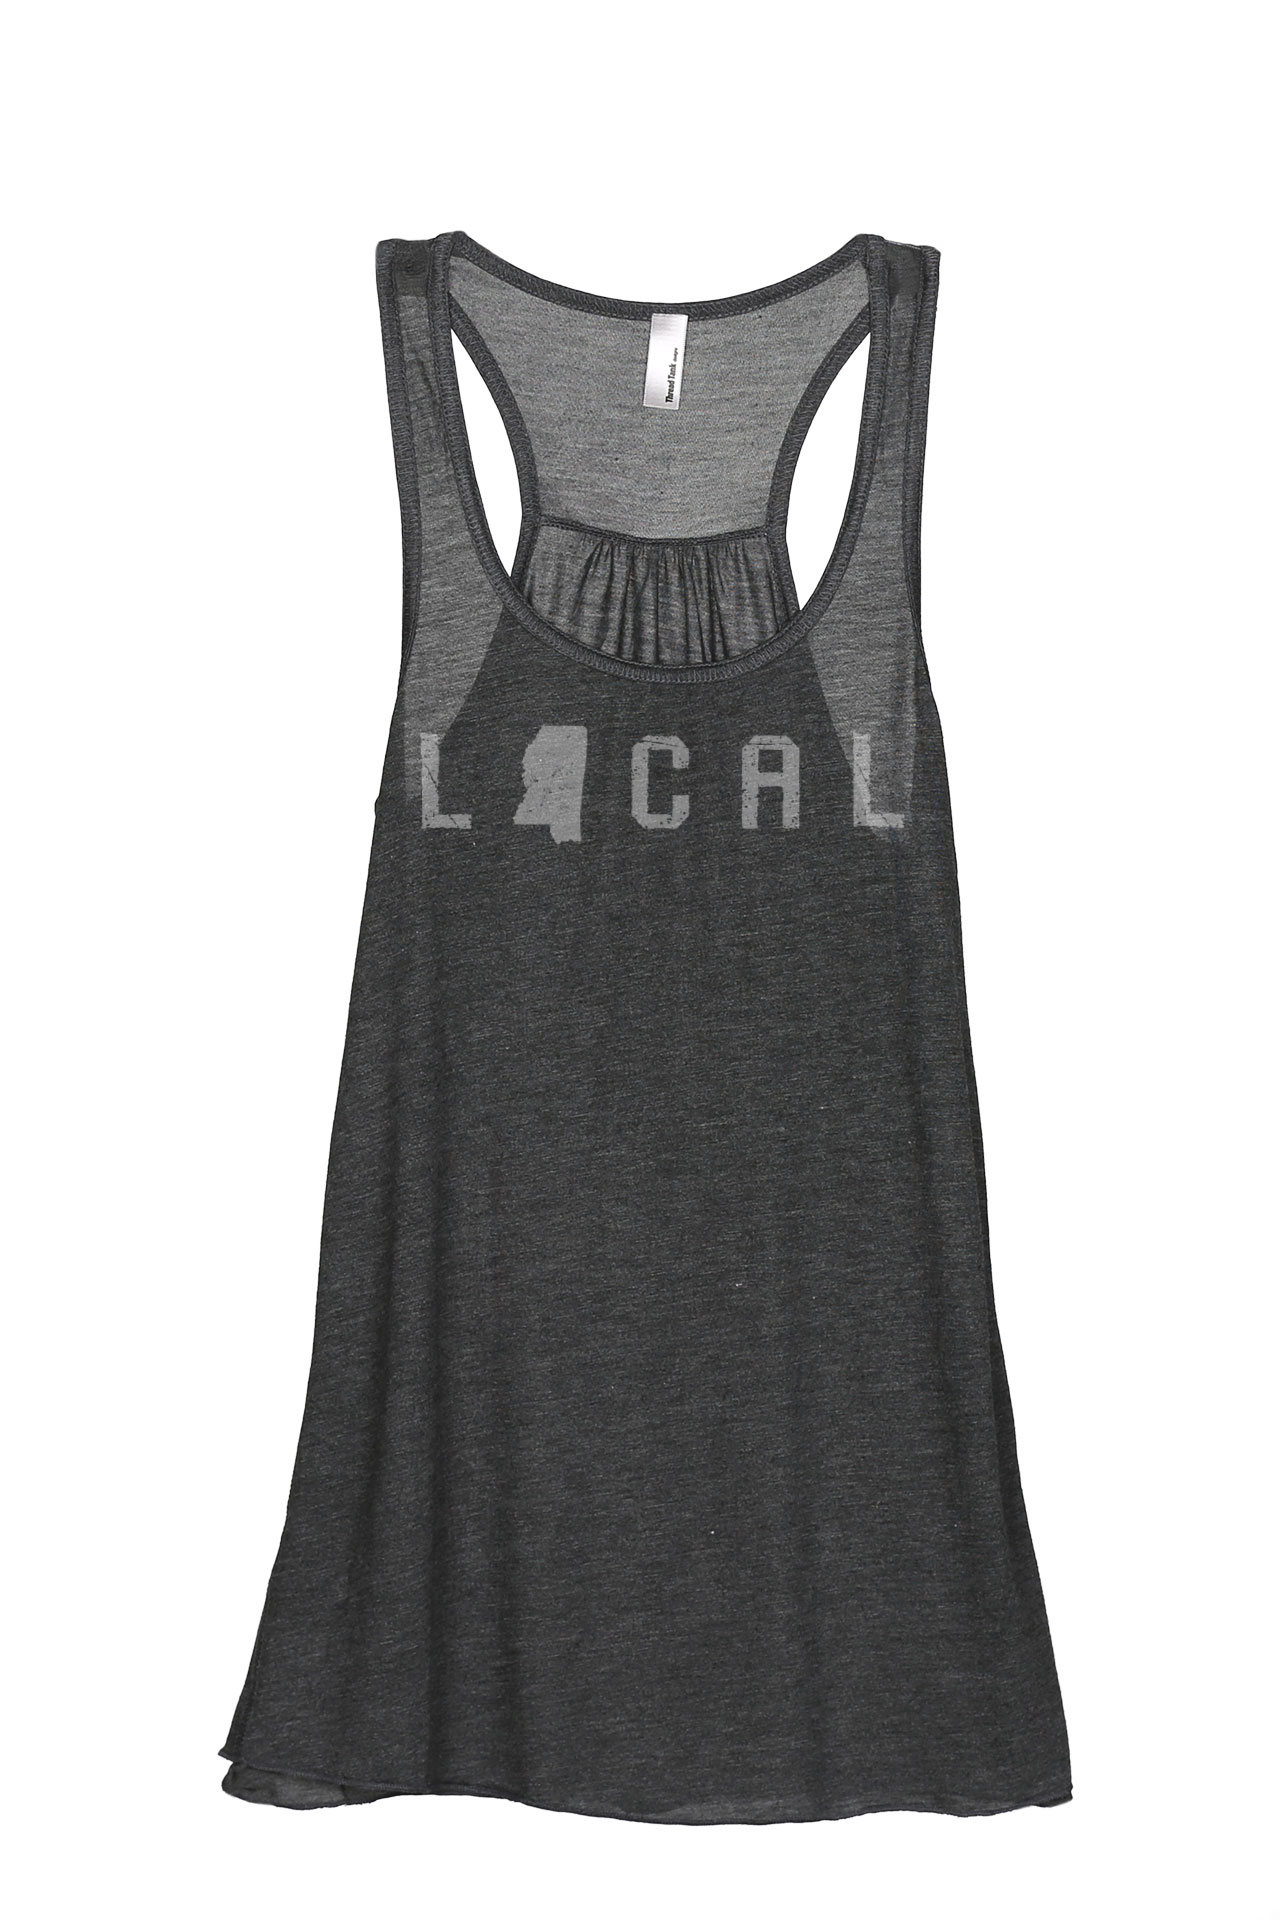 Thread Tank Local Mississippi State Women's Sleeveless Flowy Racerback Tank Top Charcoal Small by